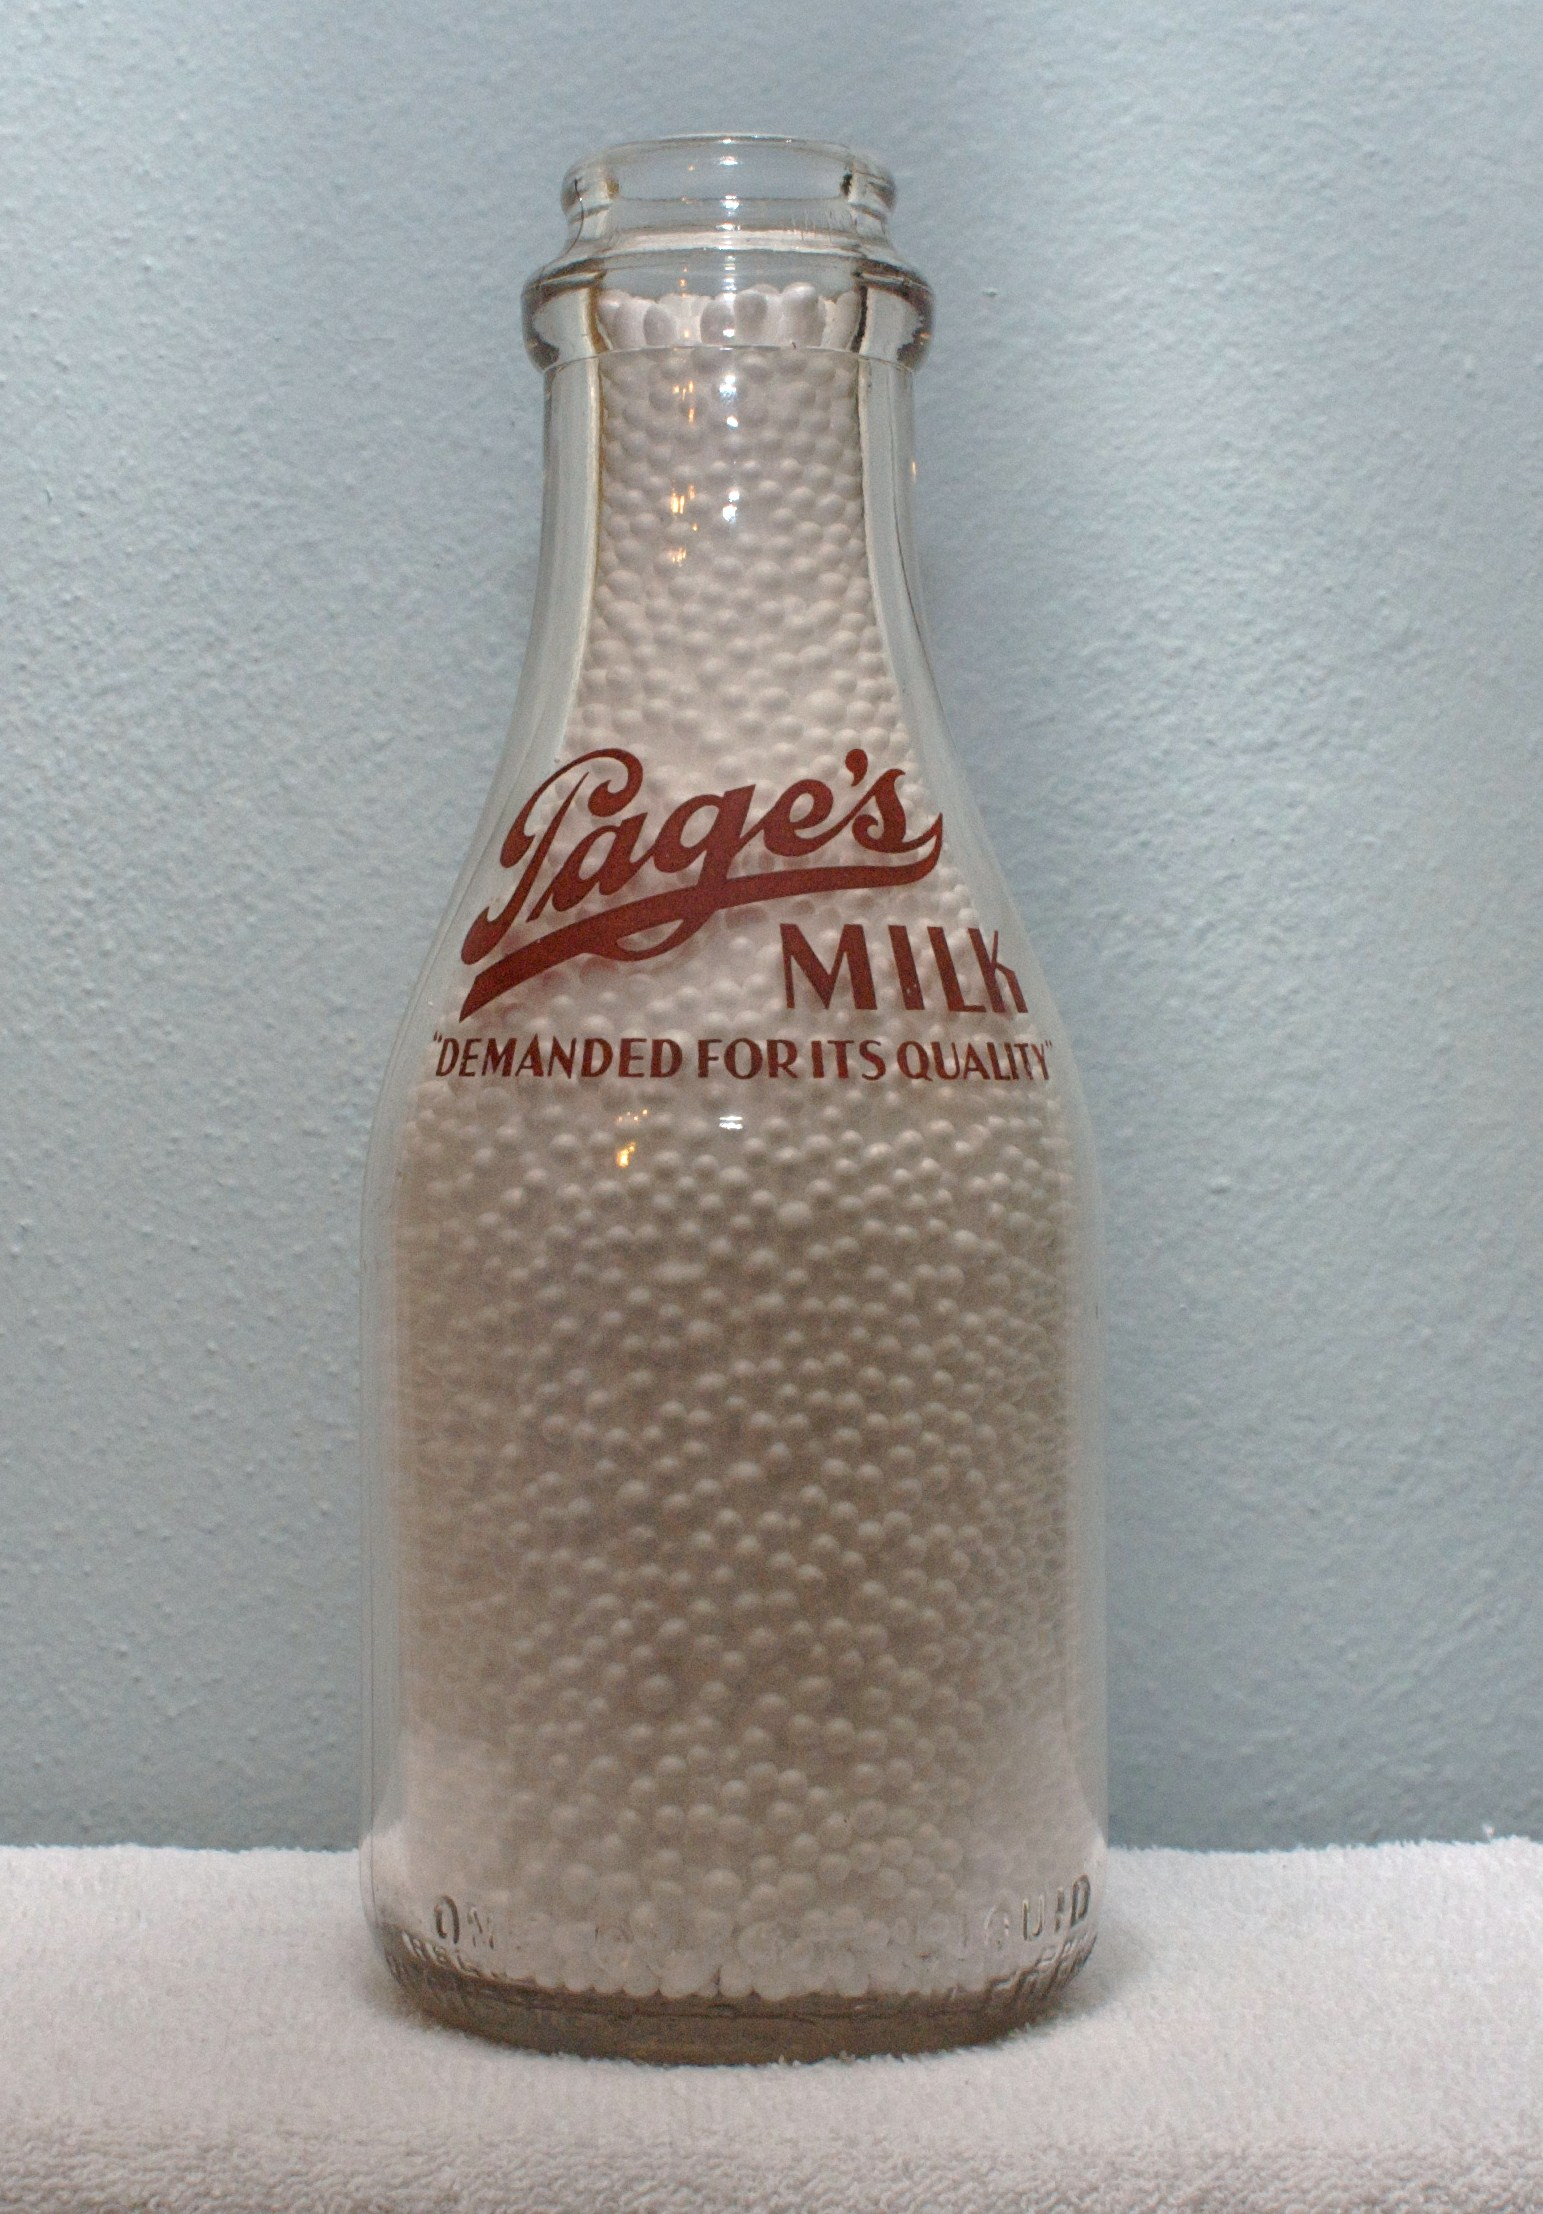 Limited Edition Pages Quart Milk Bottle 1930-1940s Demanded for its Quality